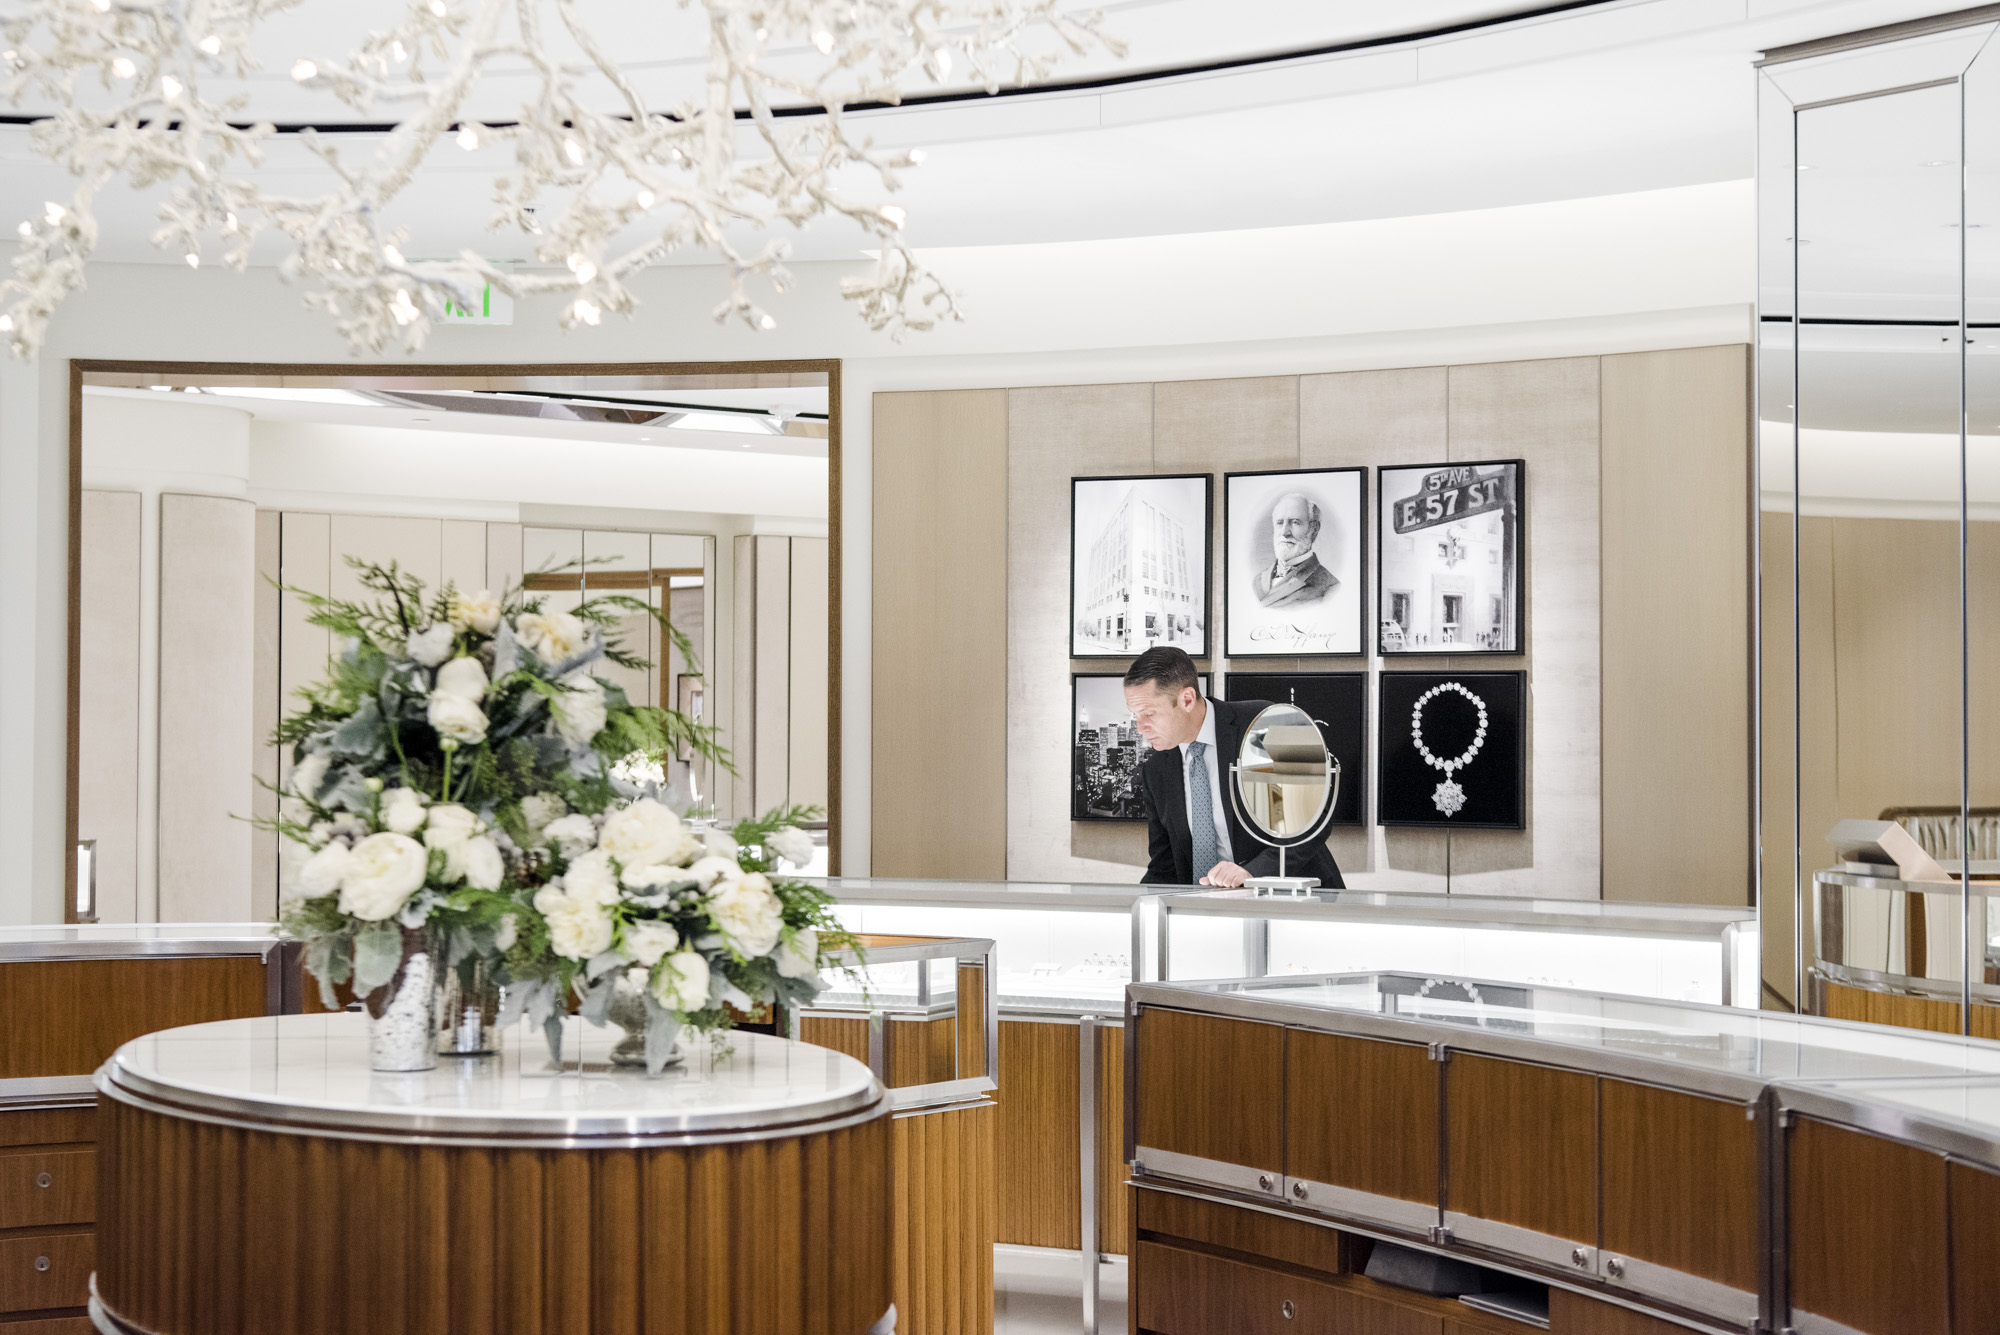 A Male Sales Associate At Tiffany Examines Jewelry Behind A Counter